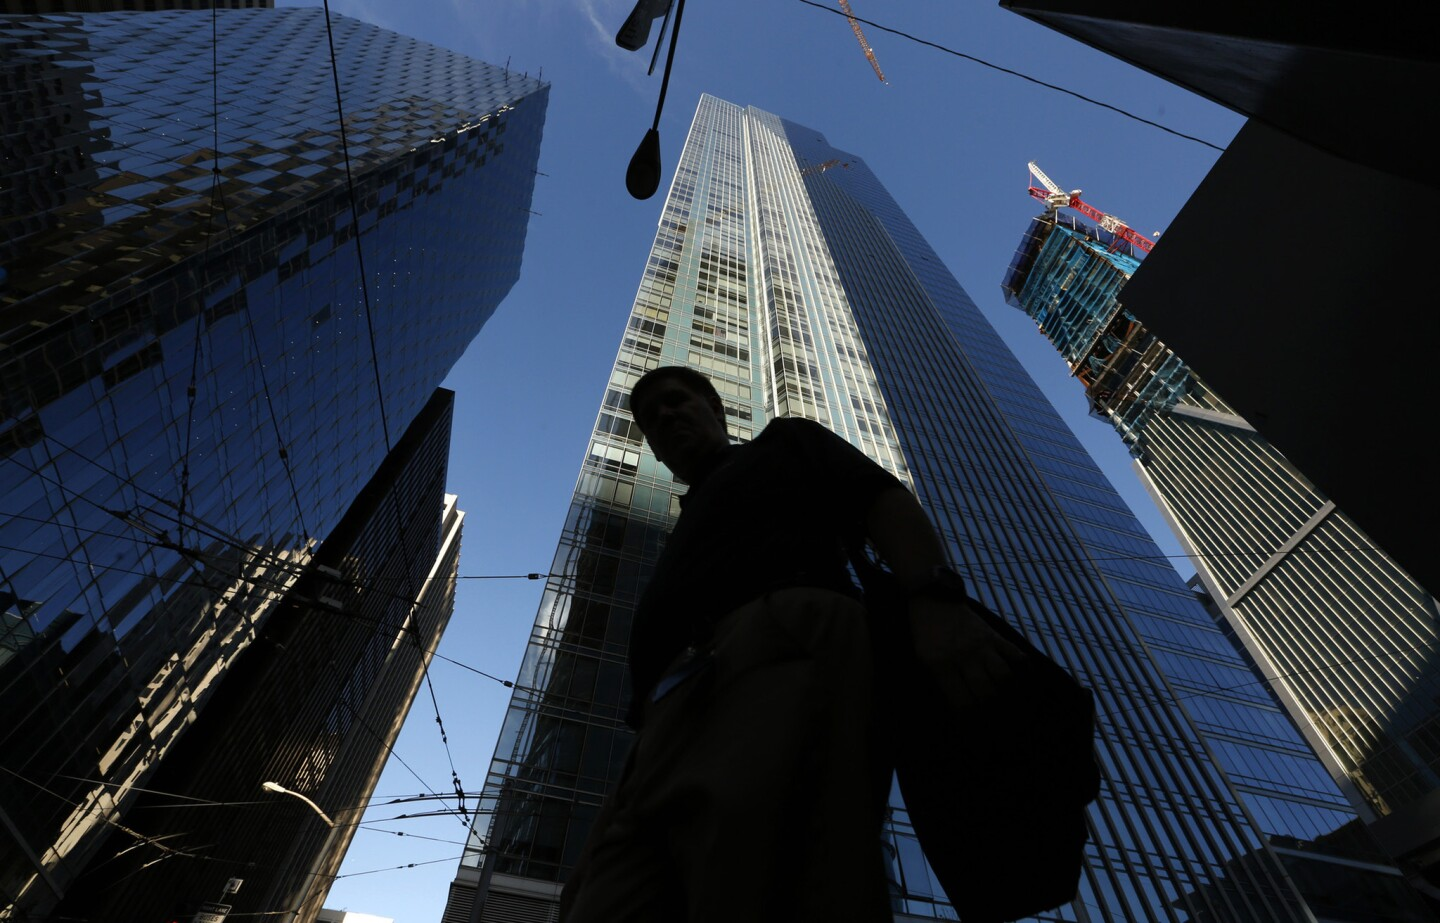 A pedestrian walks past the luxury Millennium Tower, a 58-story high rise in San Francisco.